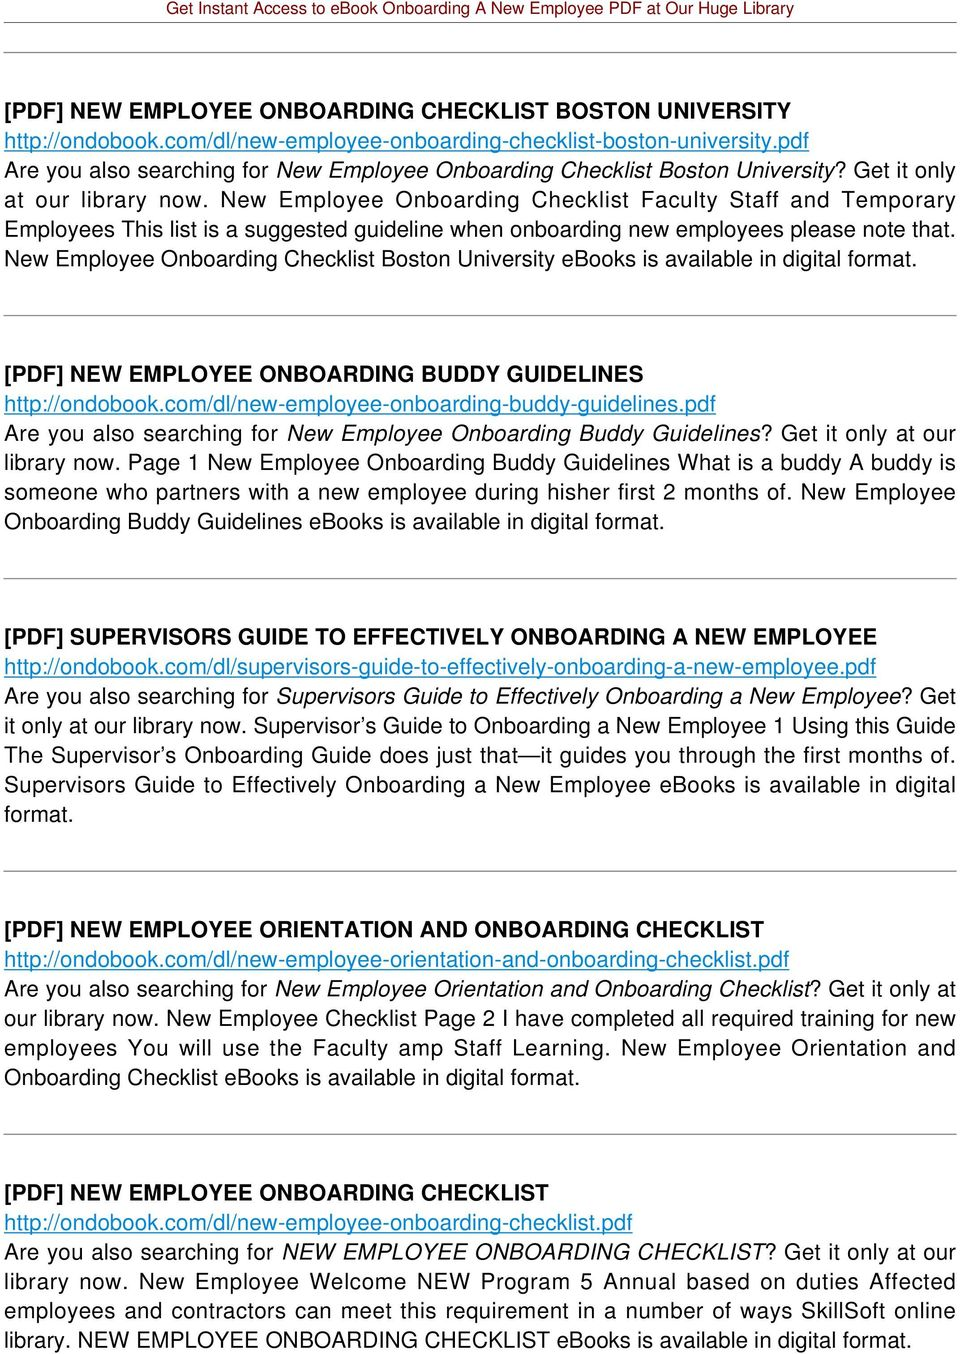 New Employee Onboarding Checklist Faculty Staff and Temporary Employees This list is a suggested guideline when onboarding new employees please note that.